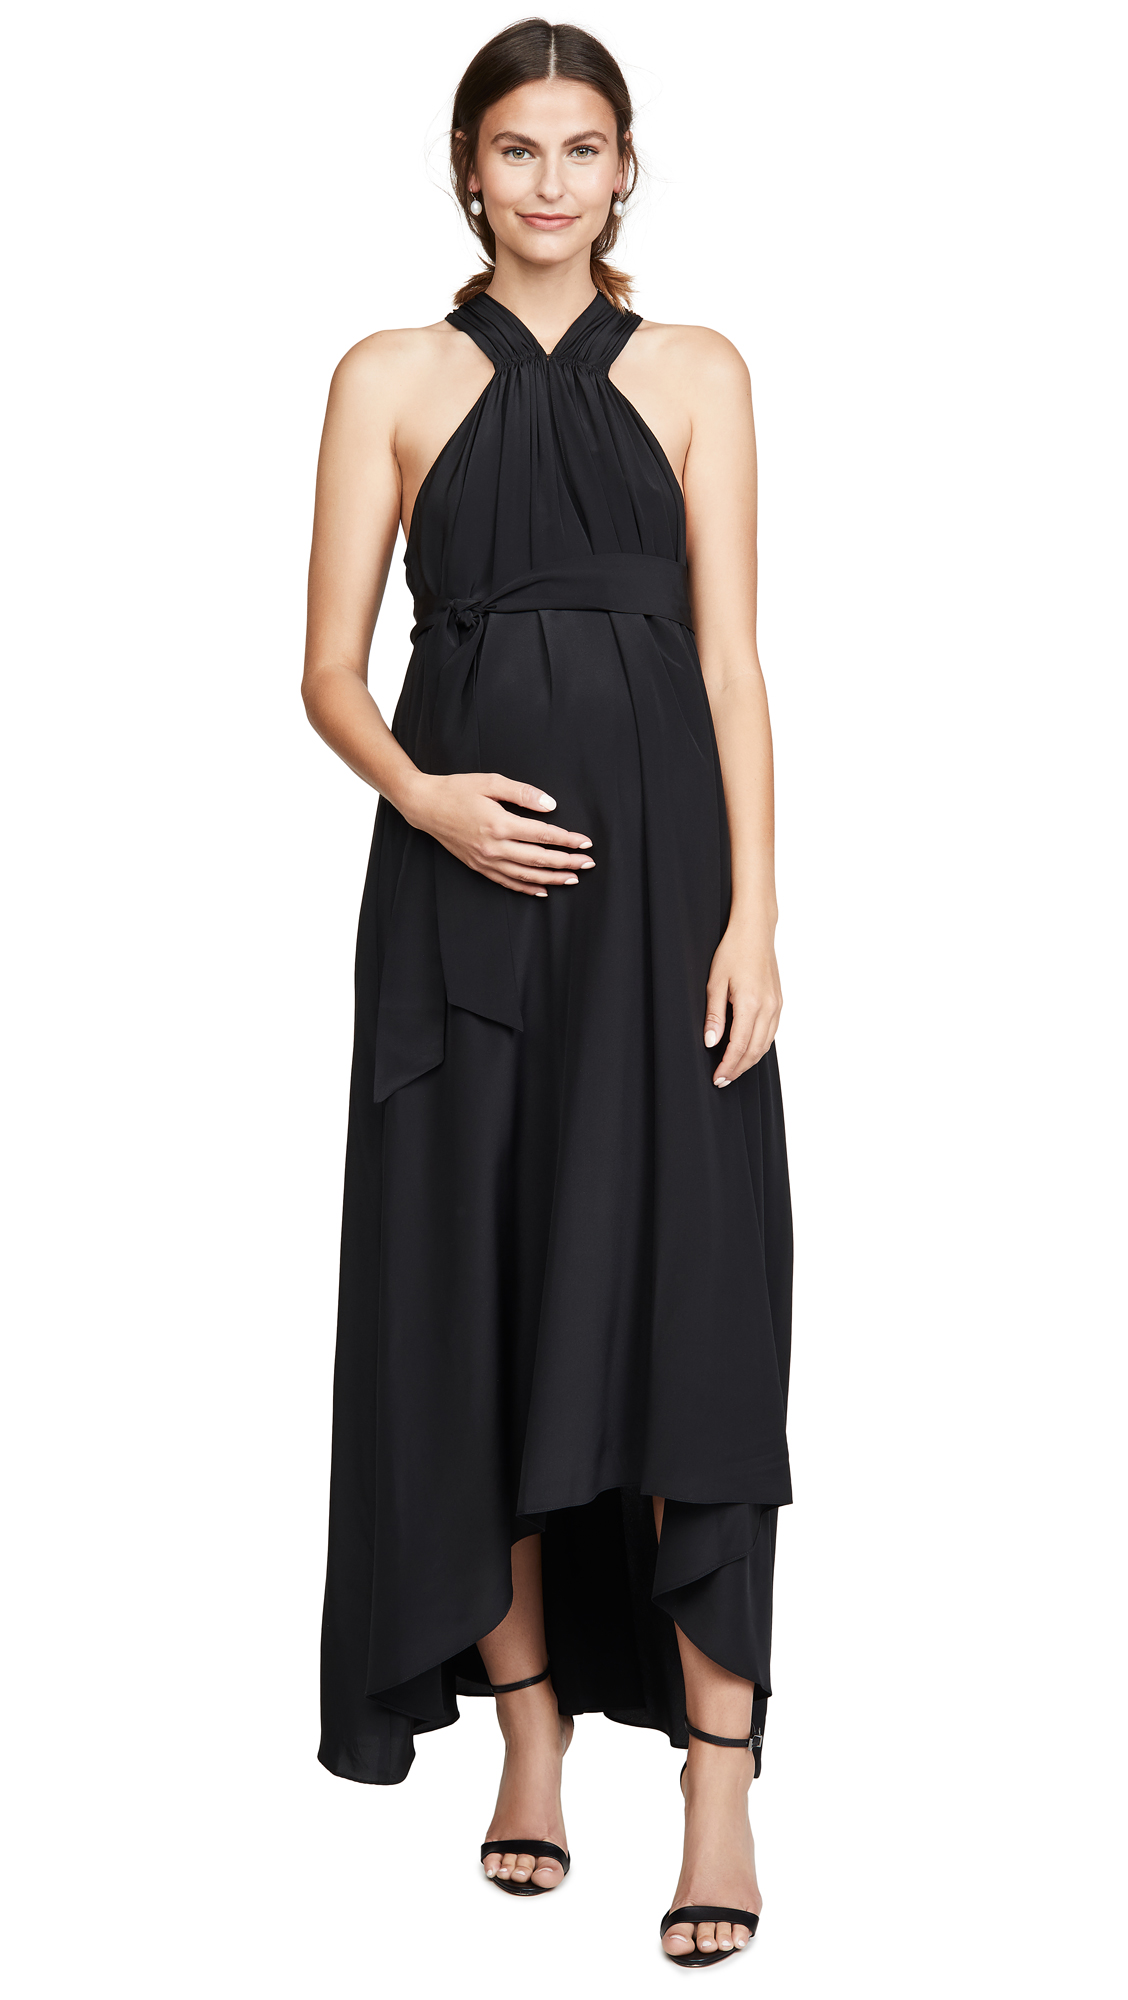 HATCH The Fete Maternity Gown